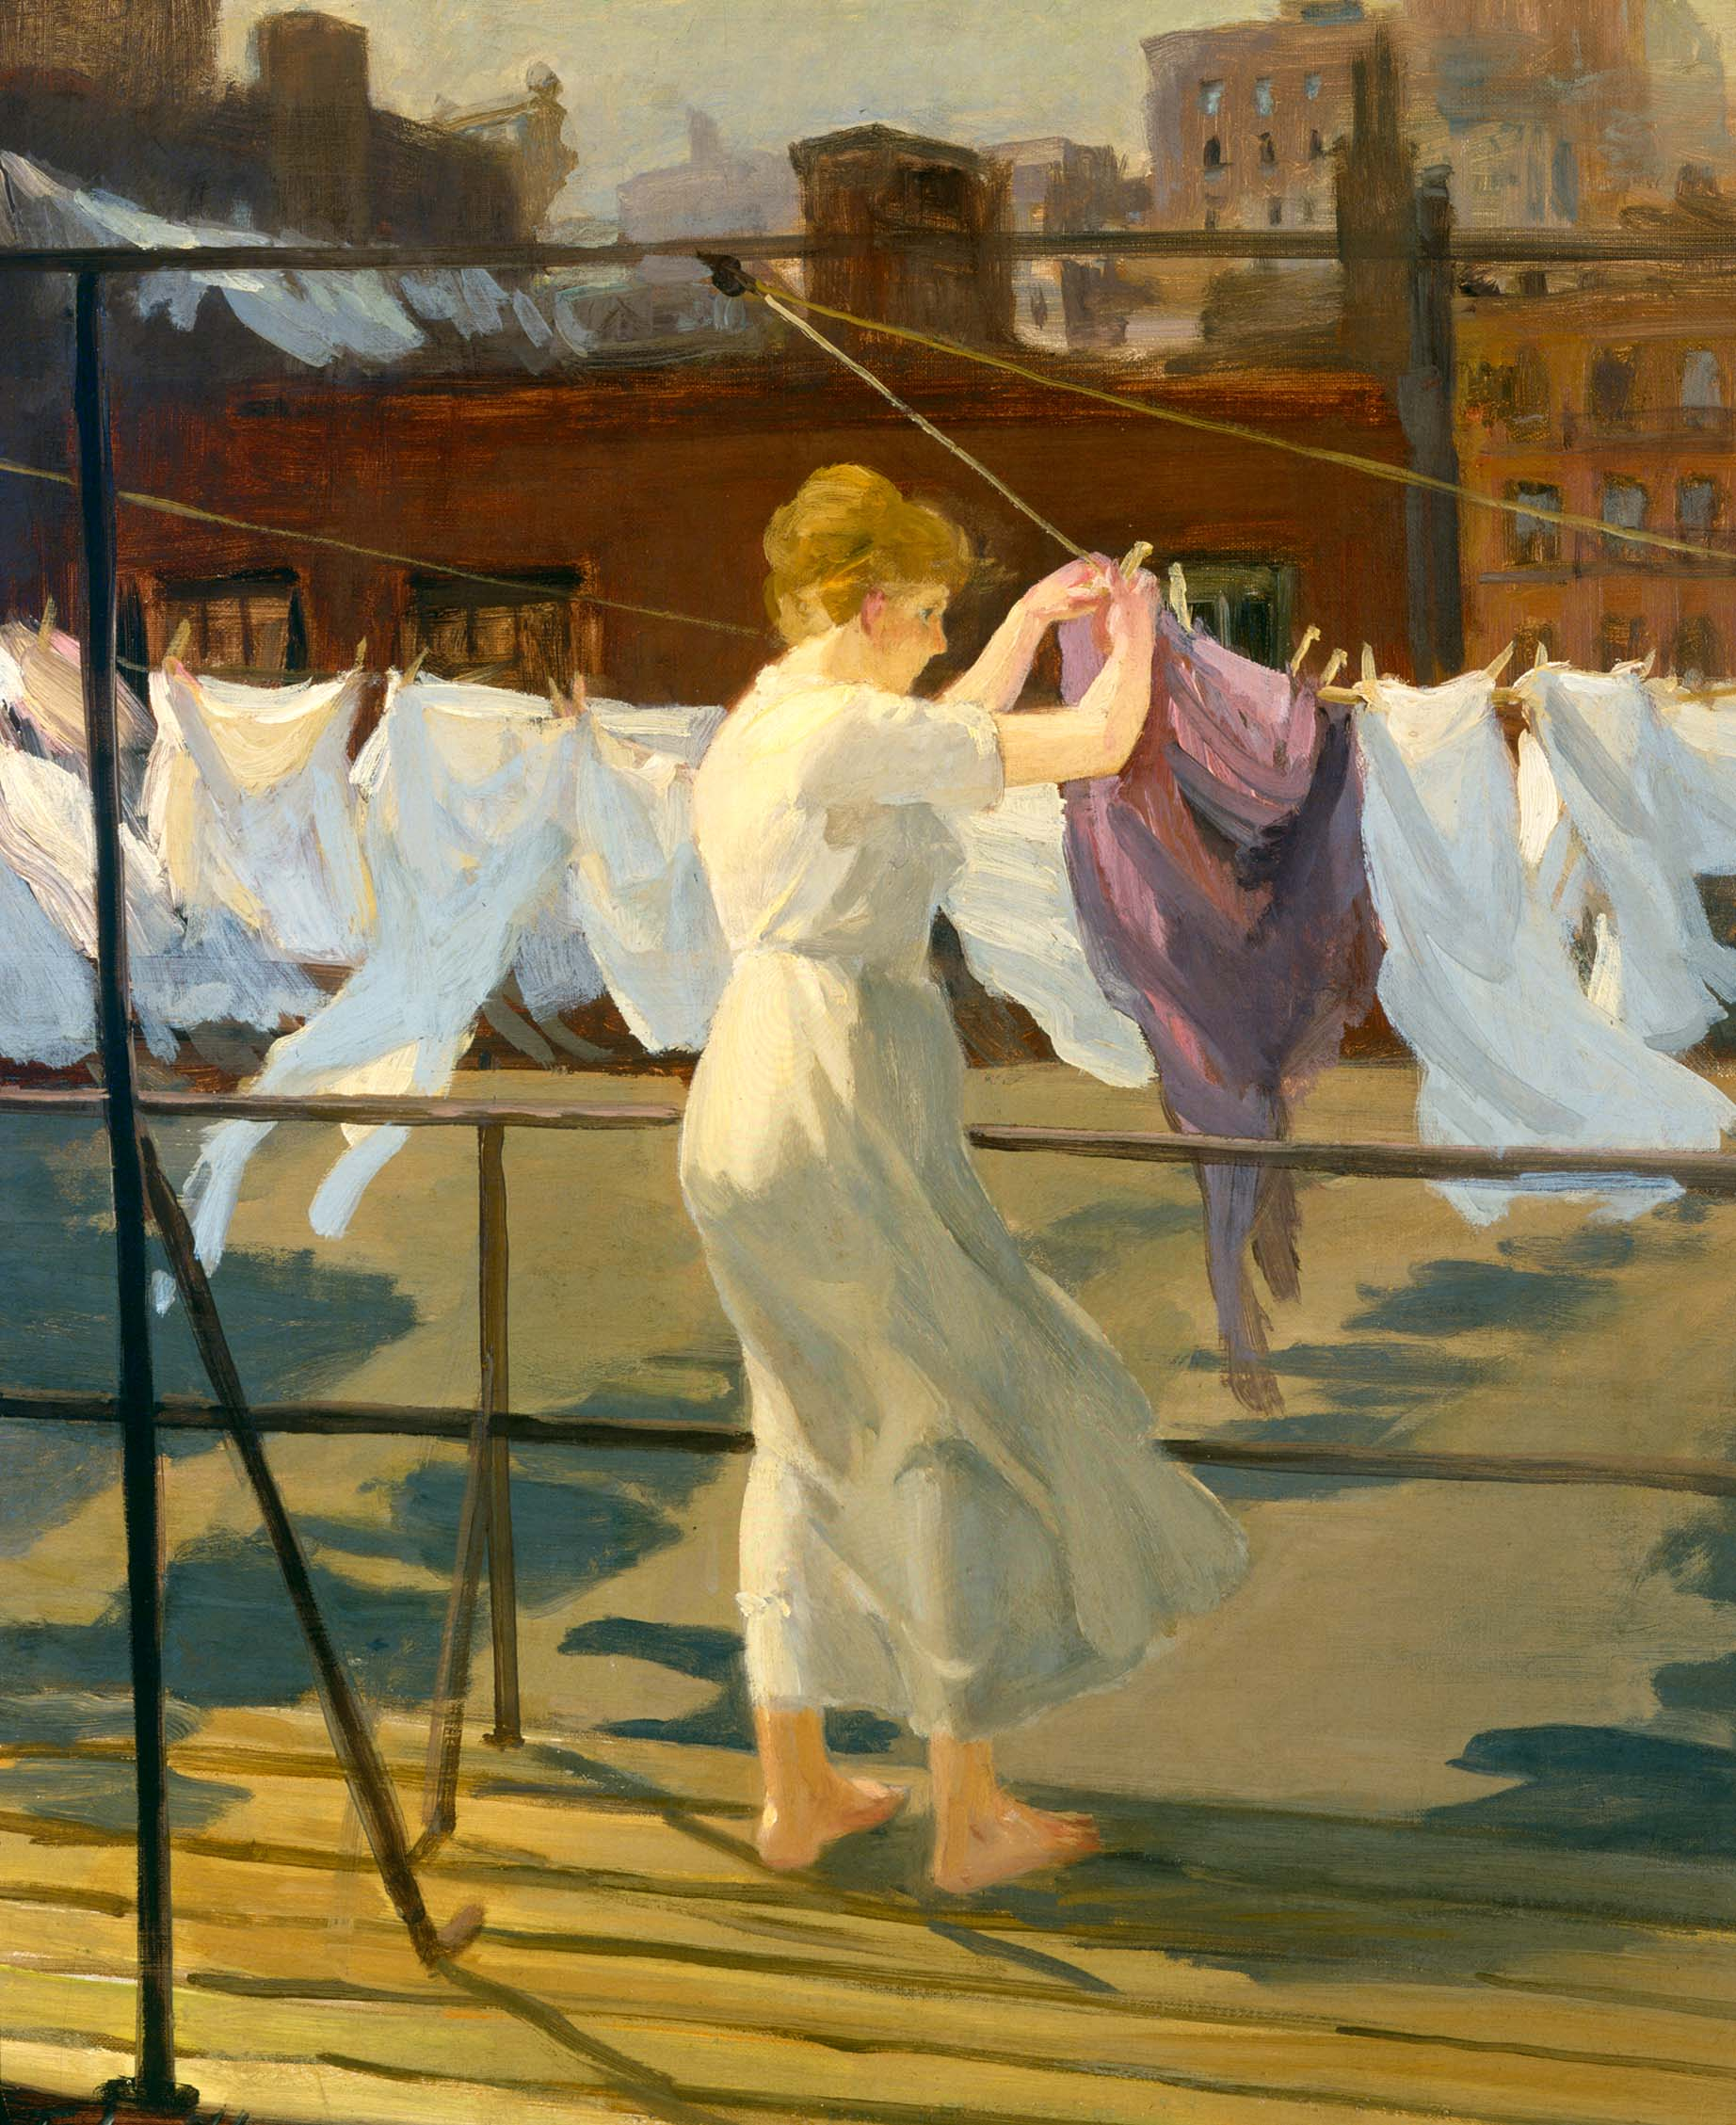 Sun and Wind on the Roof, by John Sloan